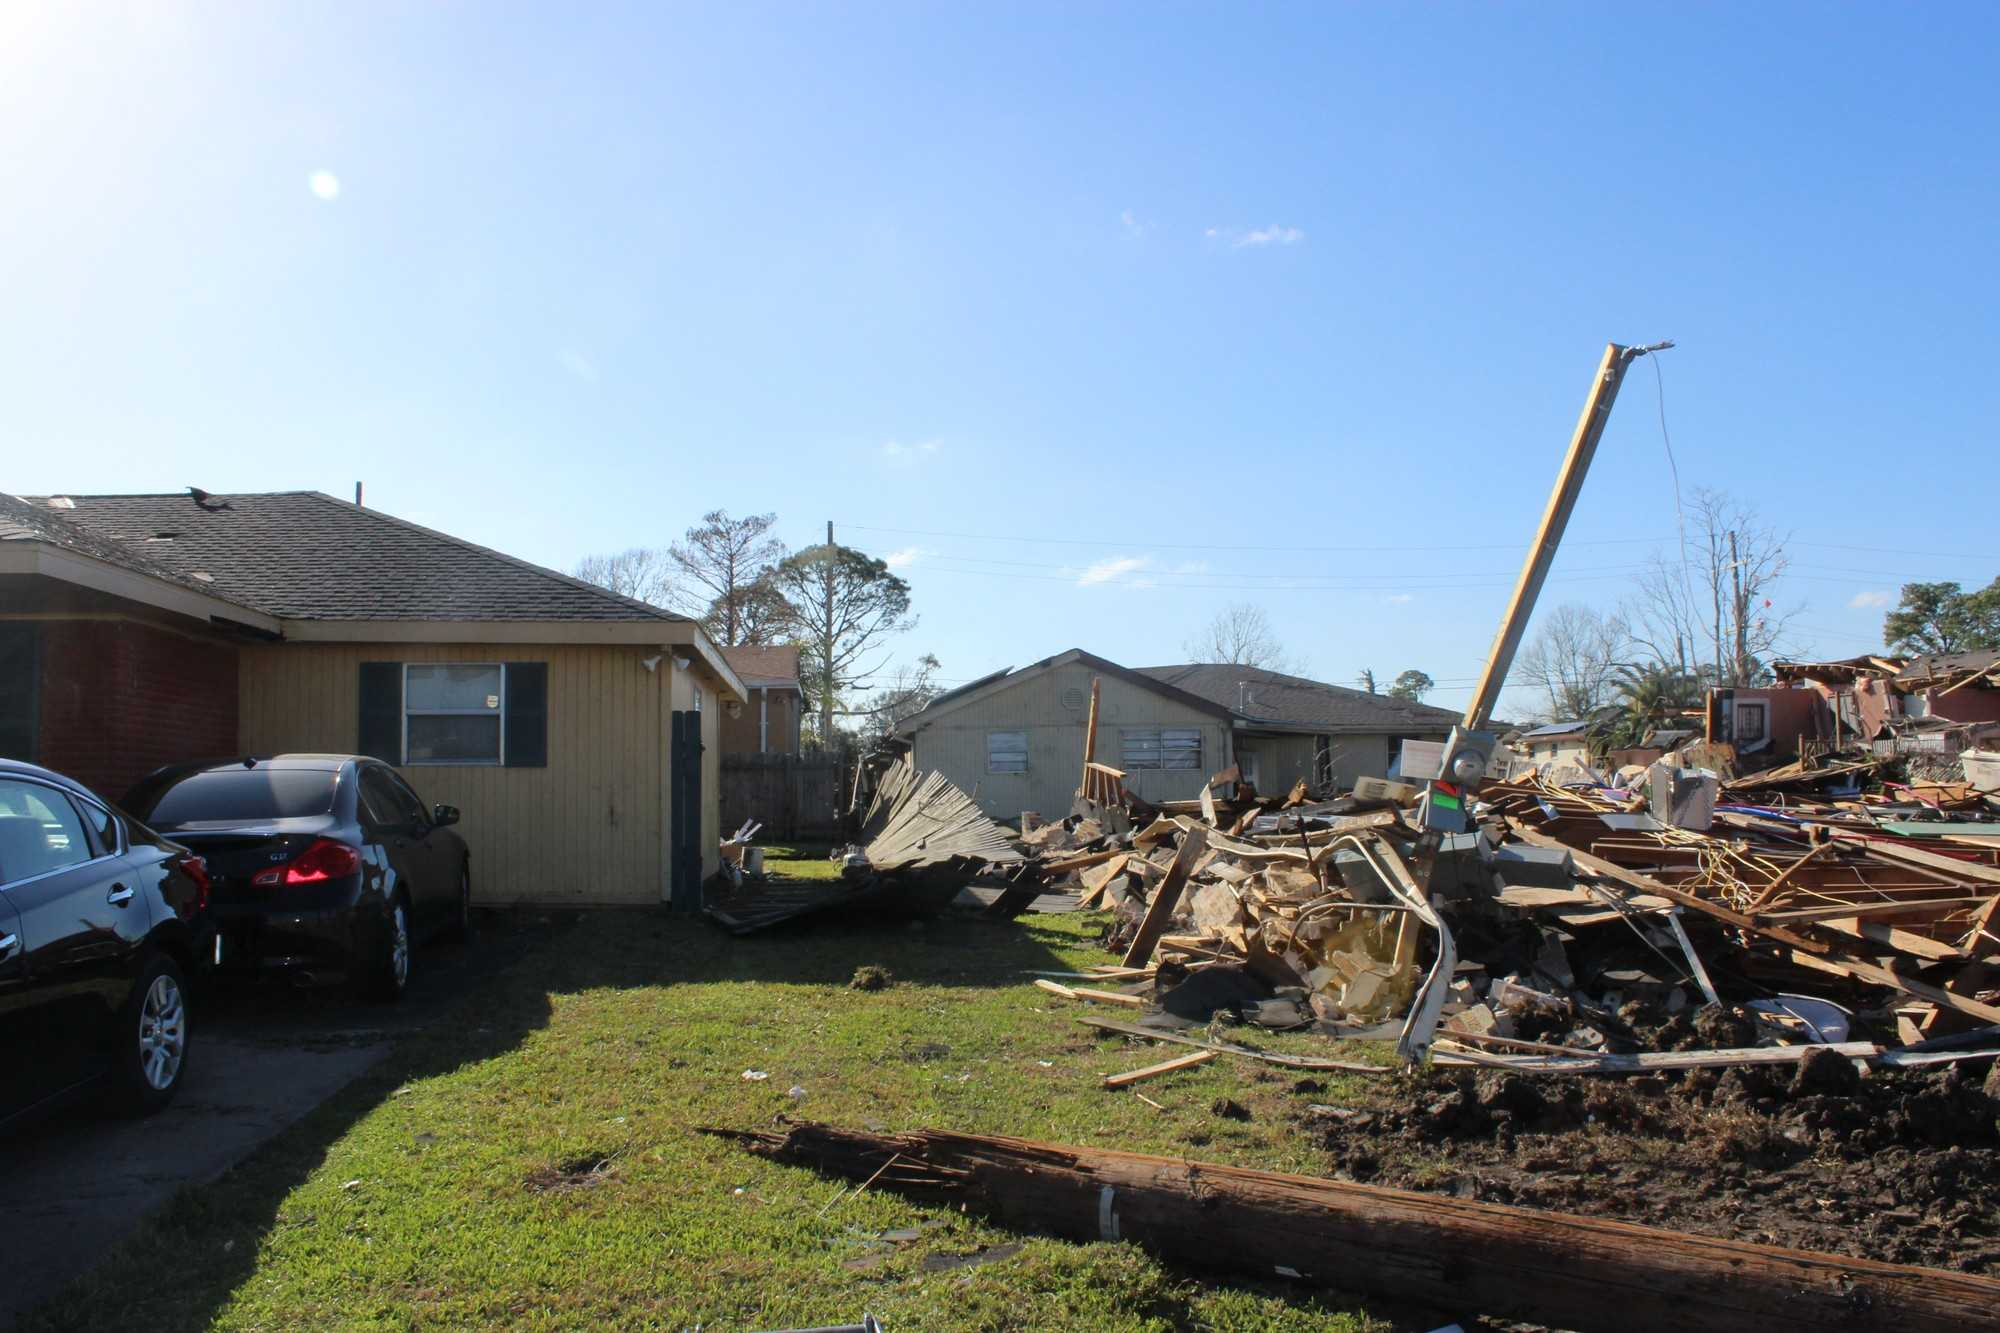 New Orleans East resident recounts being inside home when tornado hit